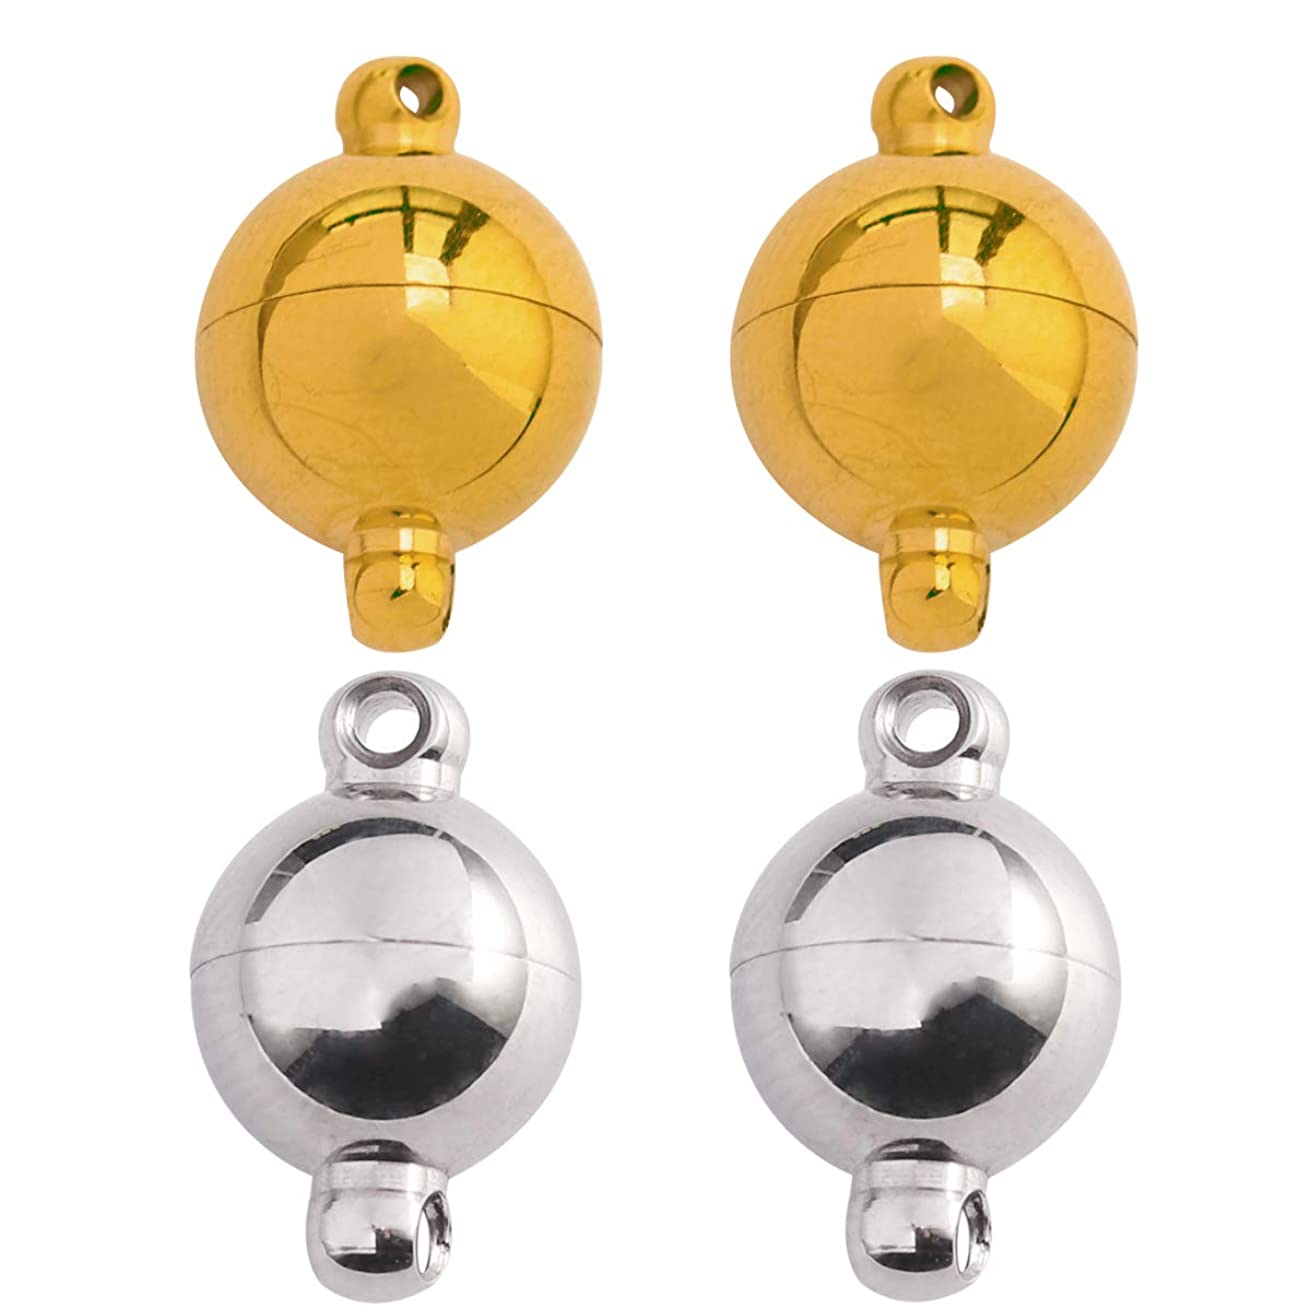 Tiparts Strong Magnetic Jewelry Clasps Stainless Steel Round Ball Magnetic Clasps for Bracelet Necklace Jewelry Making 18k Gold and Silver Tone 10mm x 15mm,4 Sets